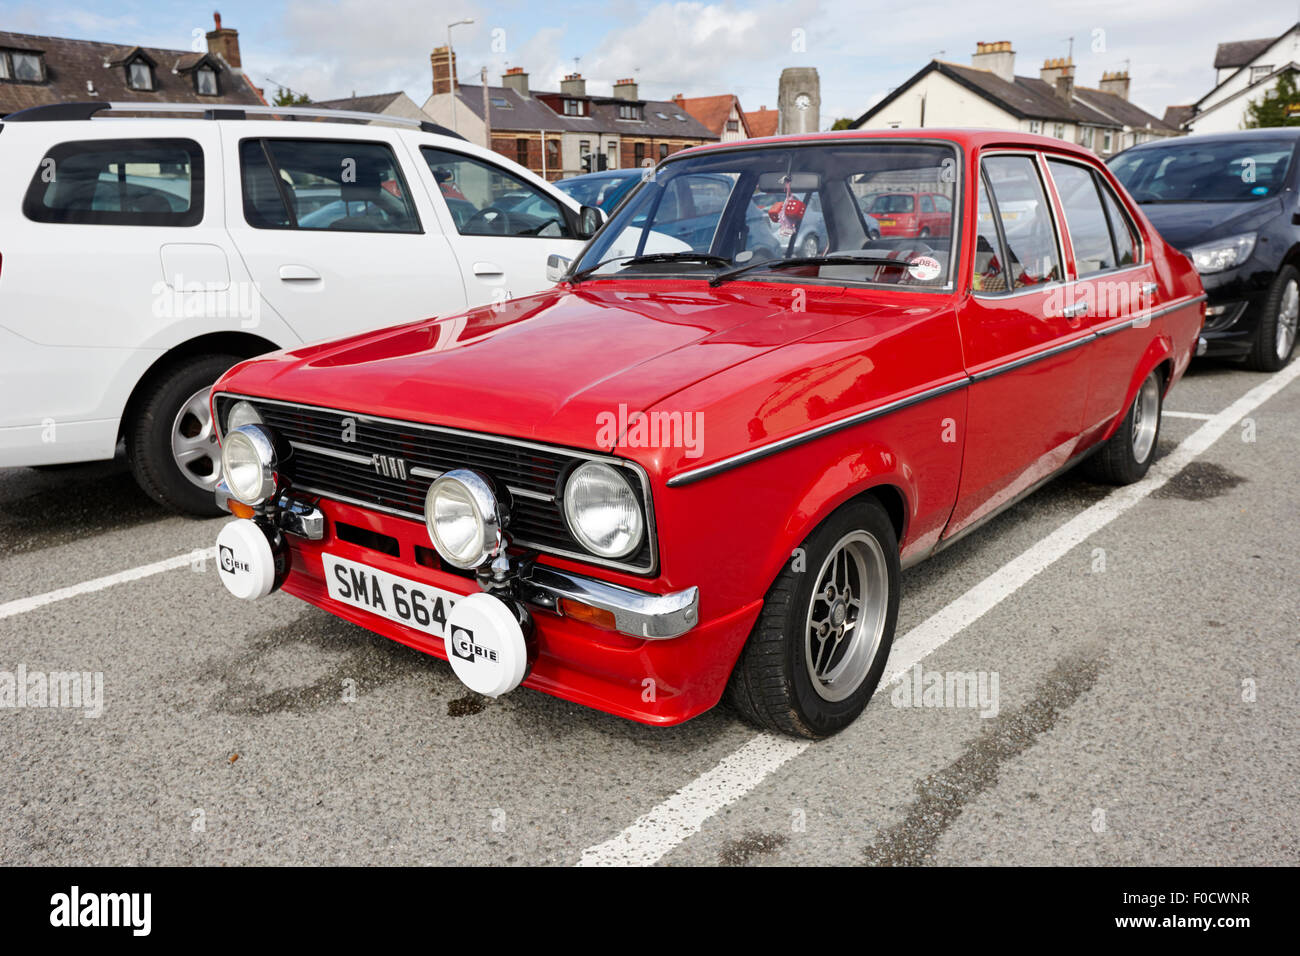 mark 2 ford escort anglesey north wales uk - Stock Image